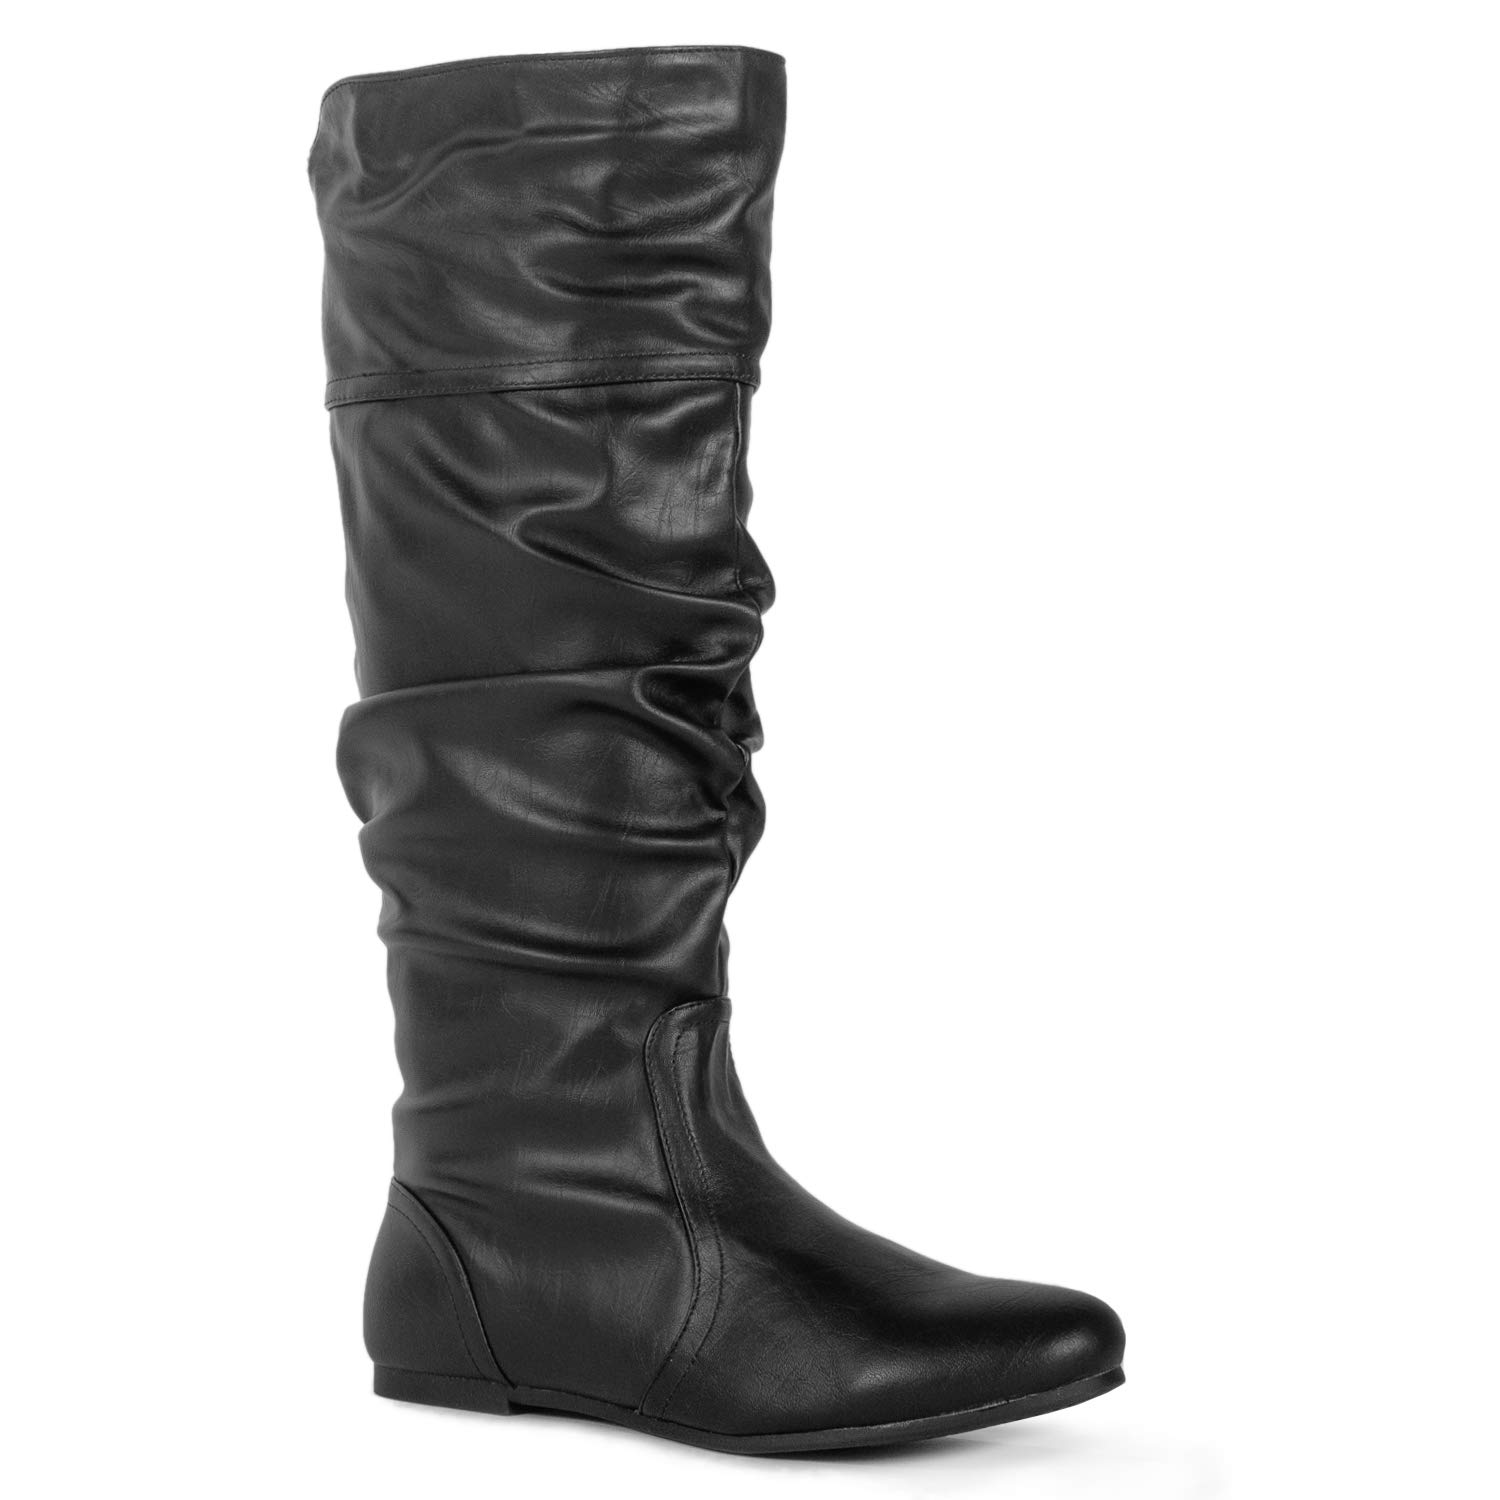 RF ROOM OF FASHION Women's Soft Vegan Slouchy Knee High Hidden Pocket Boots